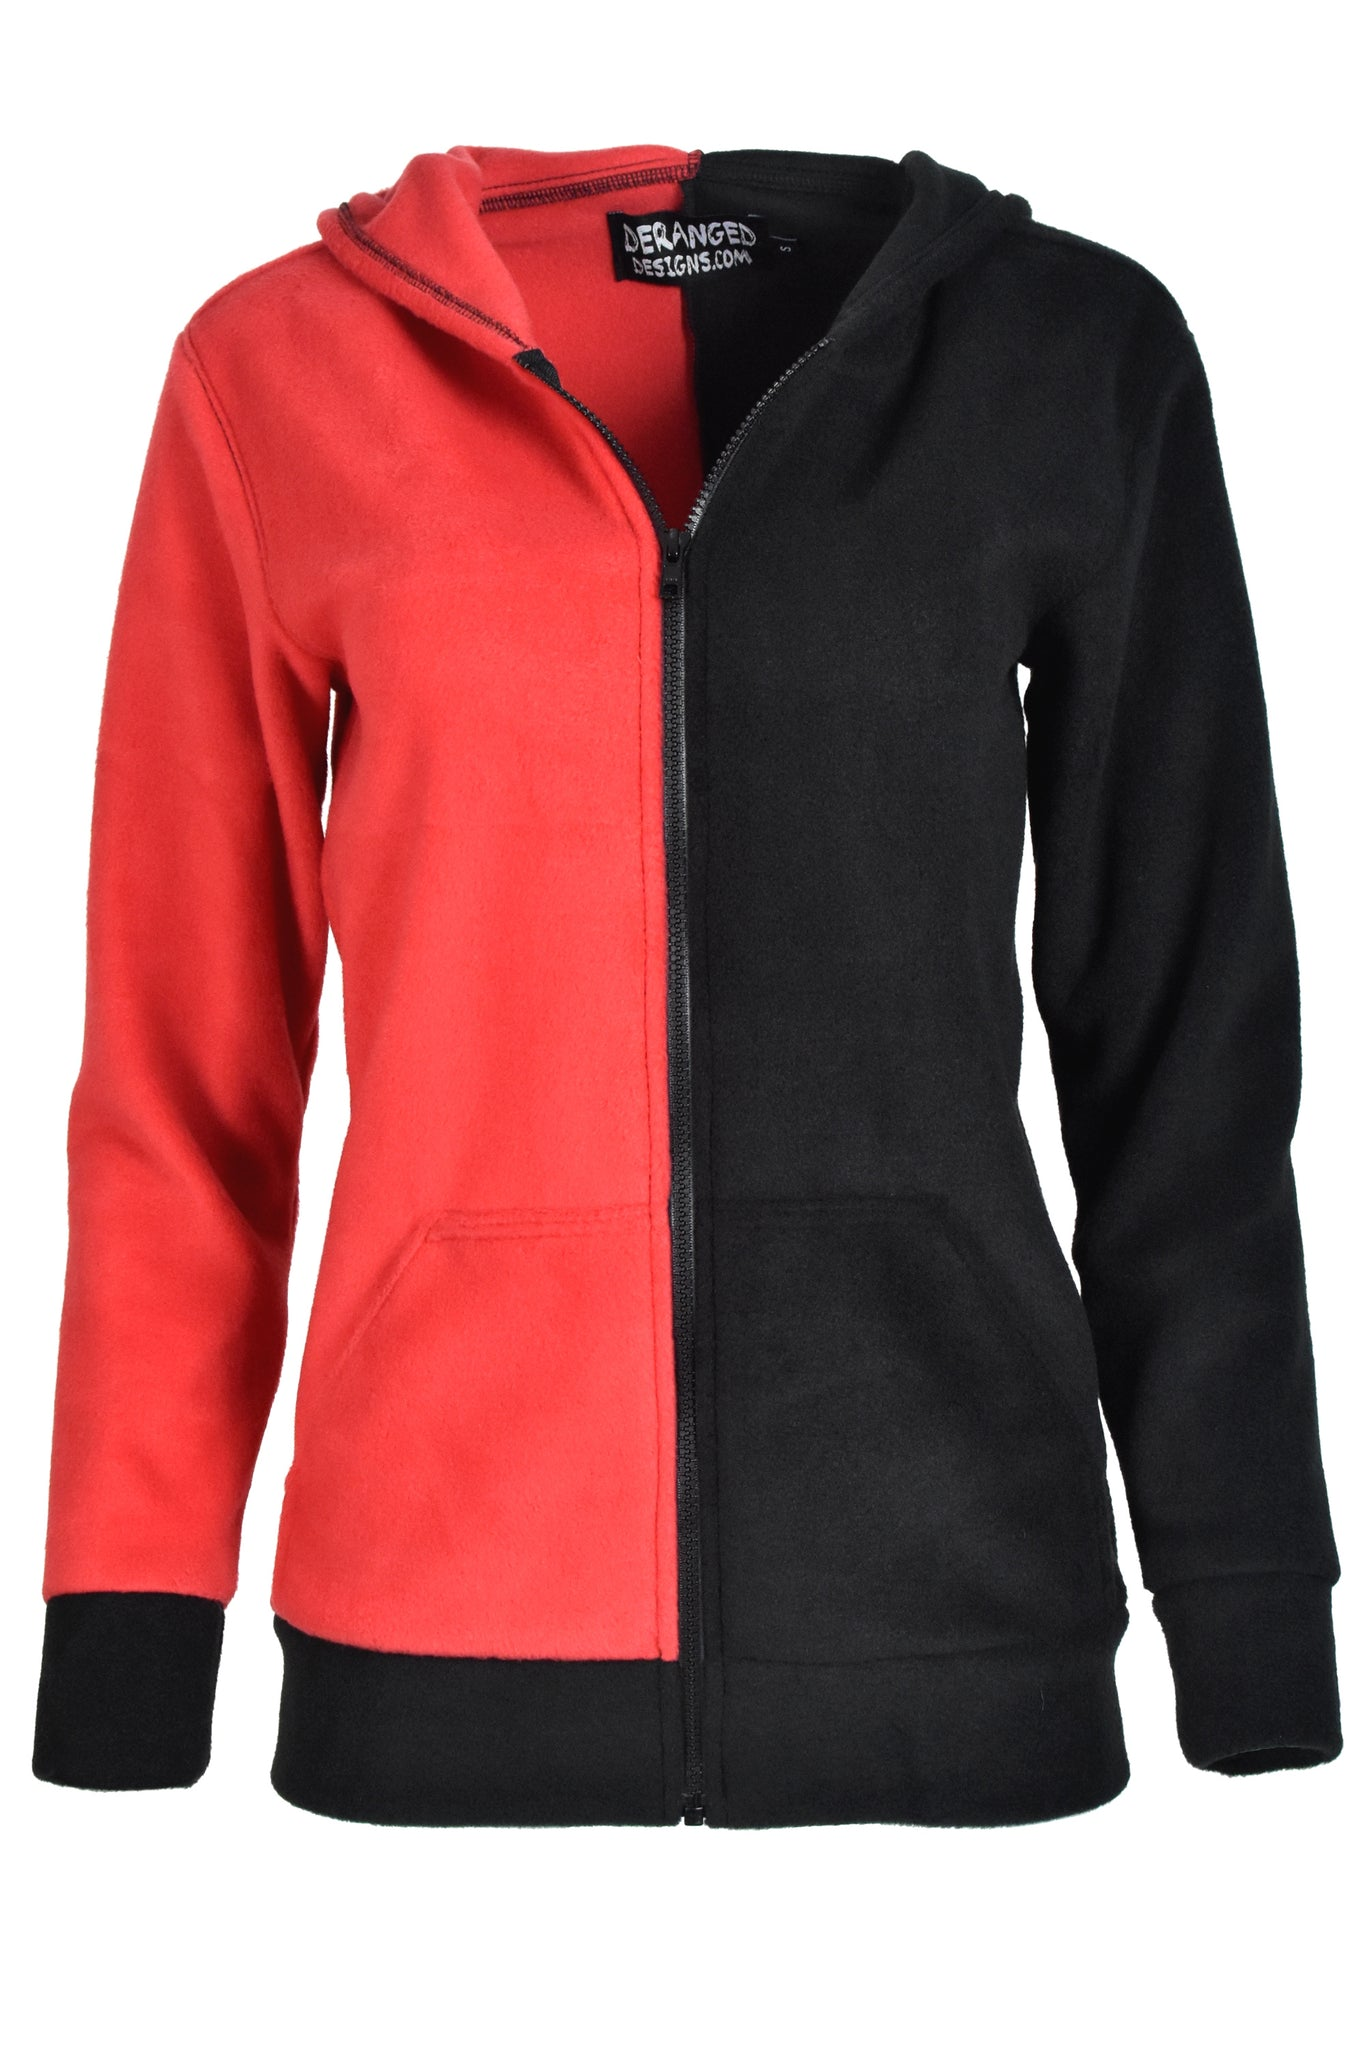 Red and Black Fleece Harley Quinn Hoodie